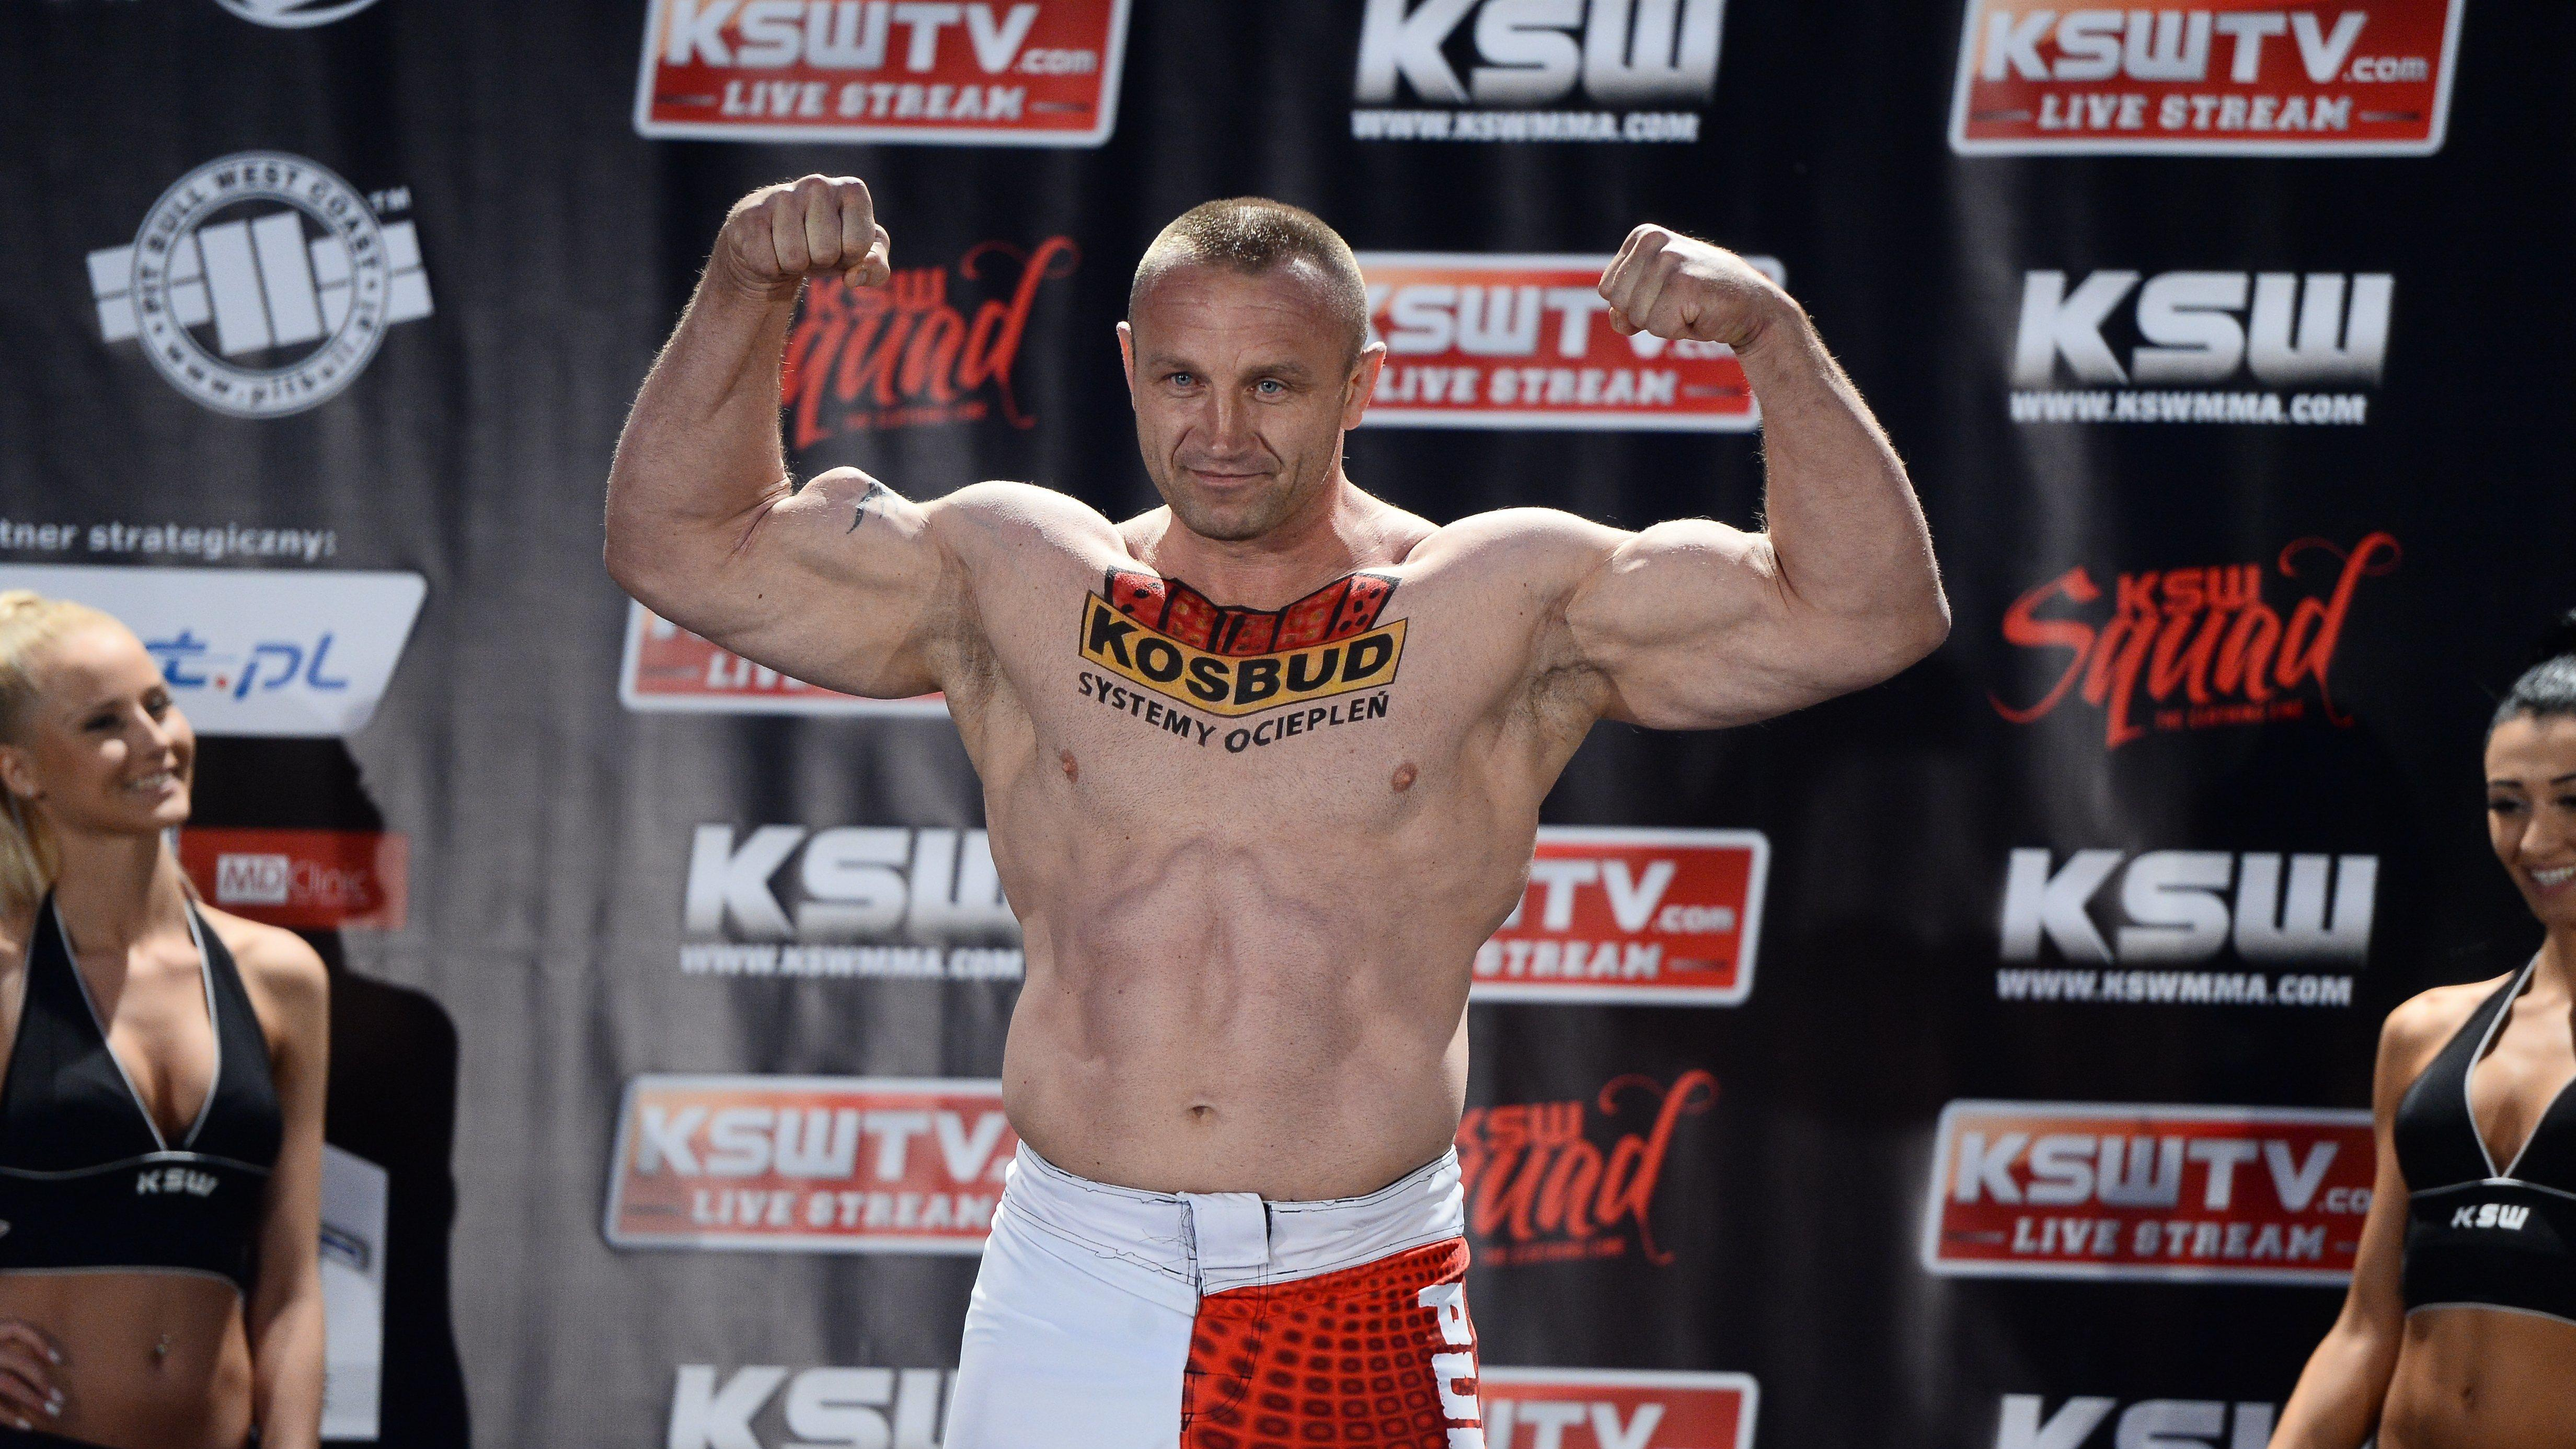 KSW > UFC (about steroids) | Sherdog Forums | UFC, MMA & Boxing